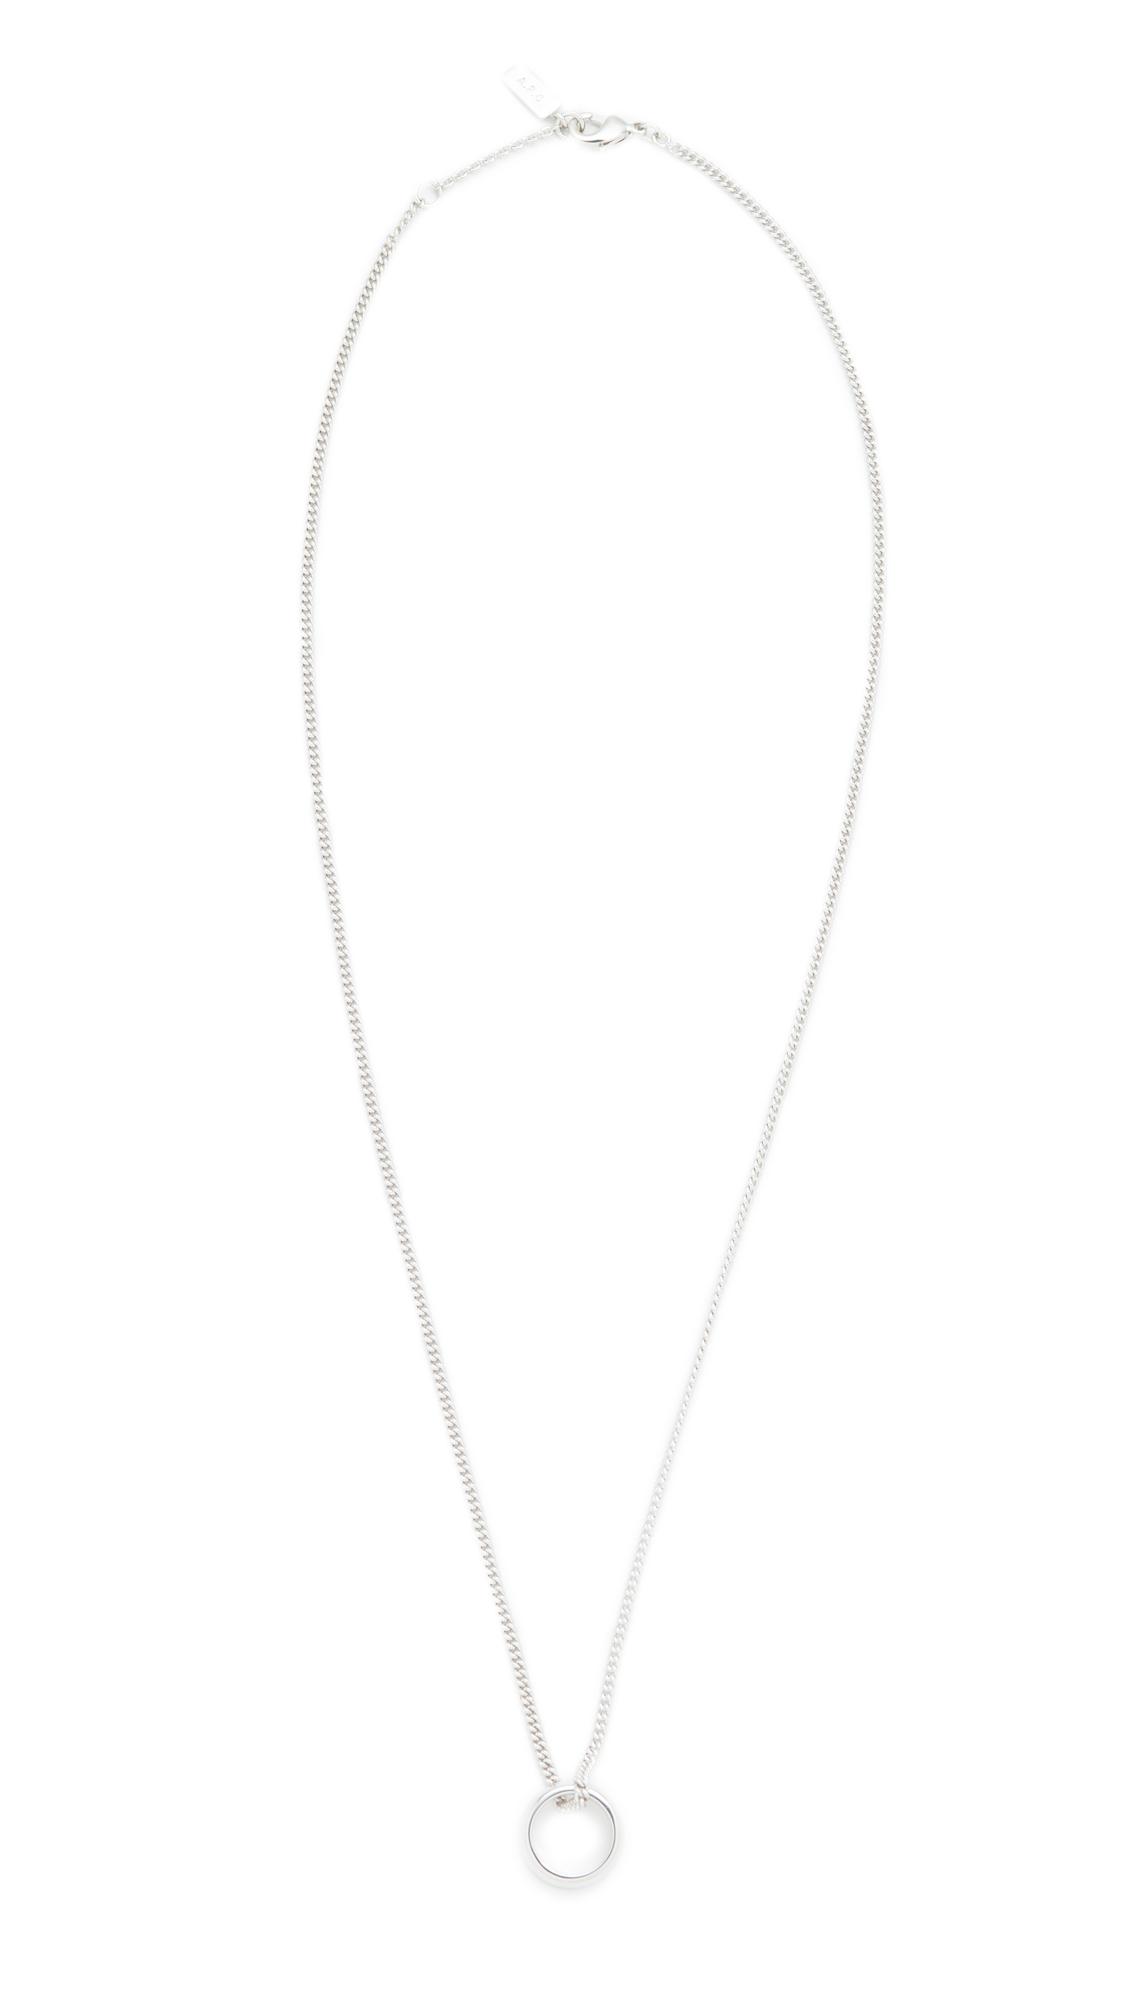 ssense for apc us men necklaces necklace en designer